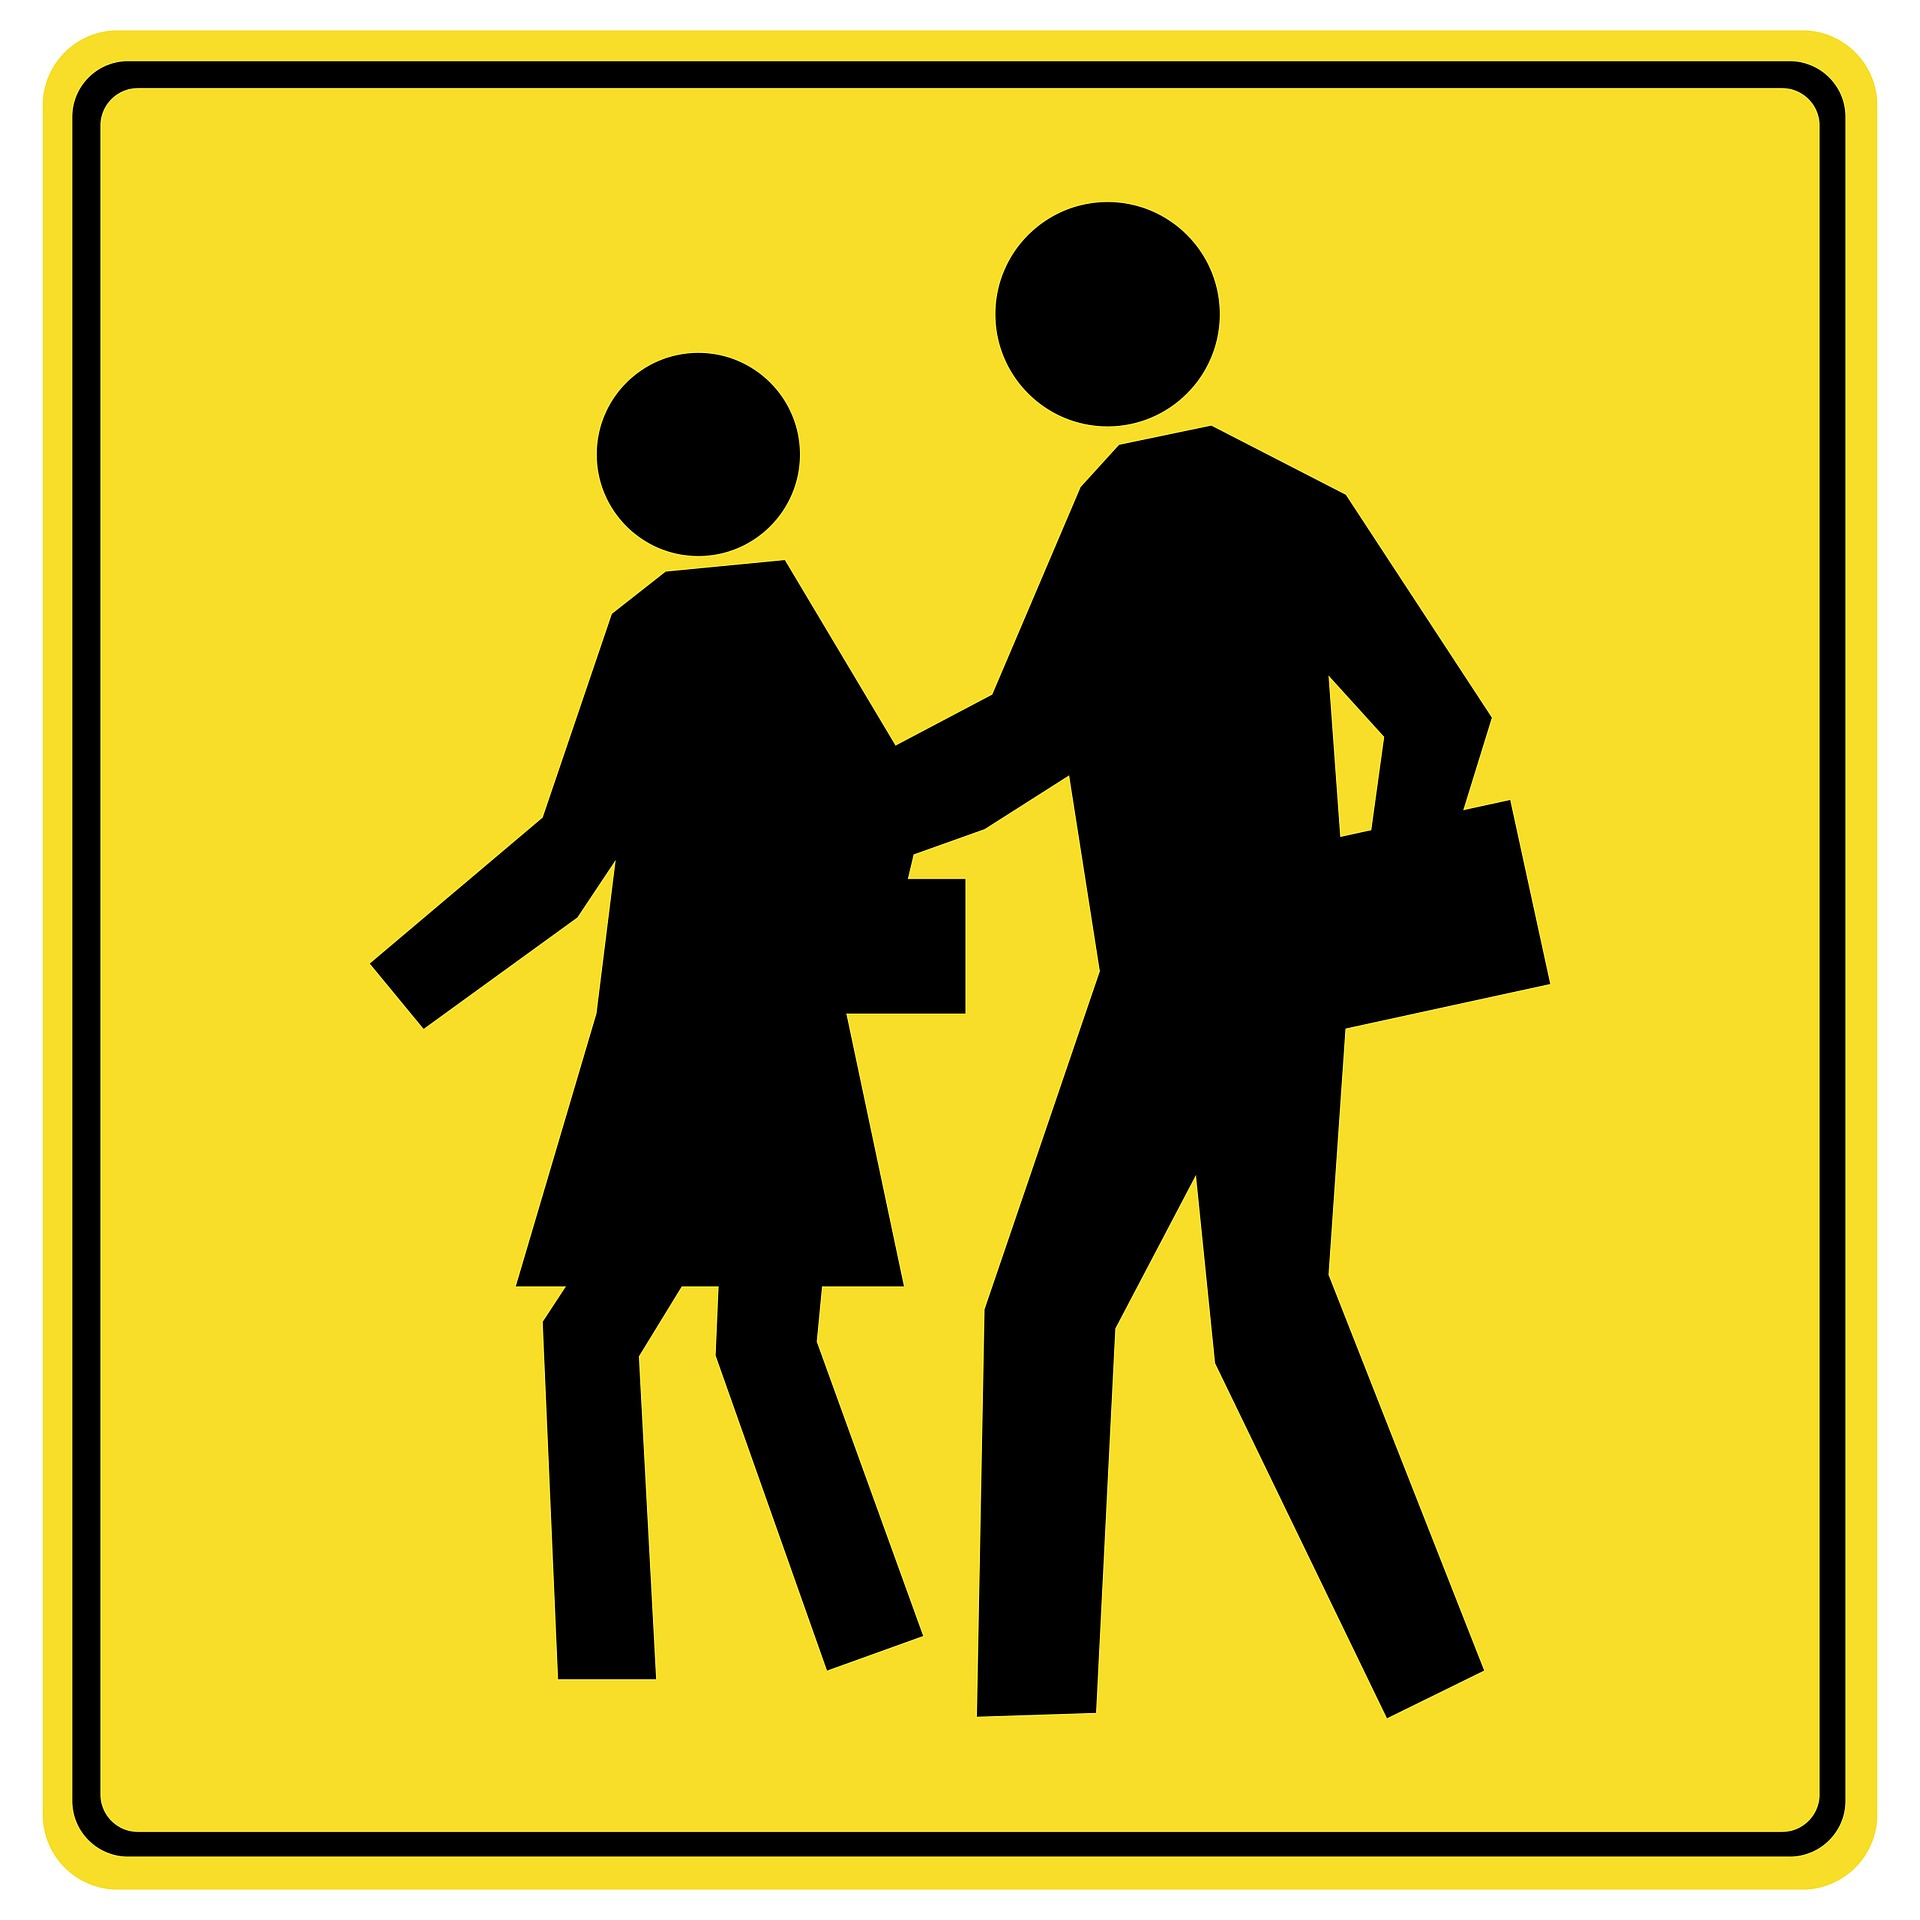 yellow and black pedestrian walking sign